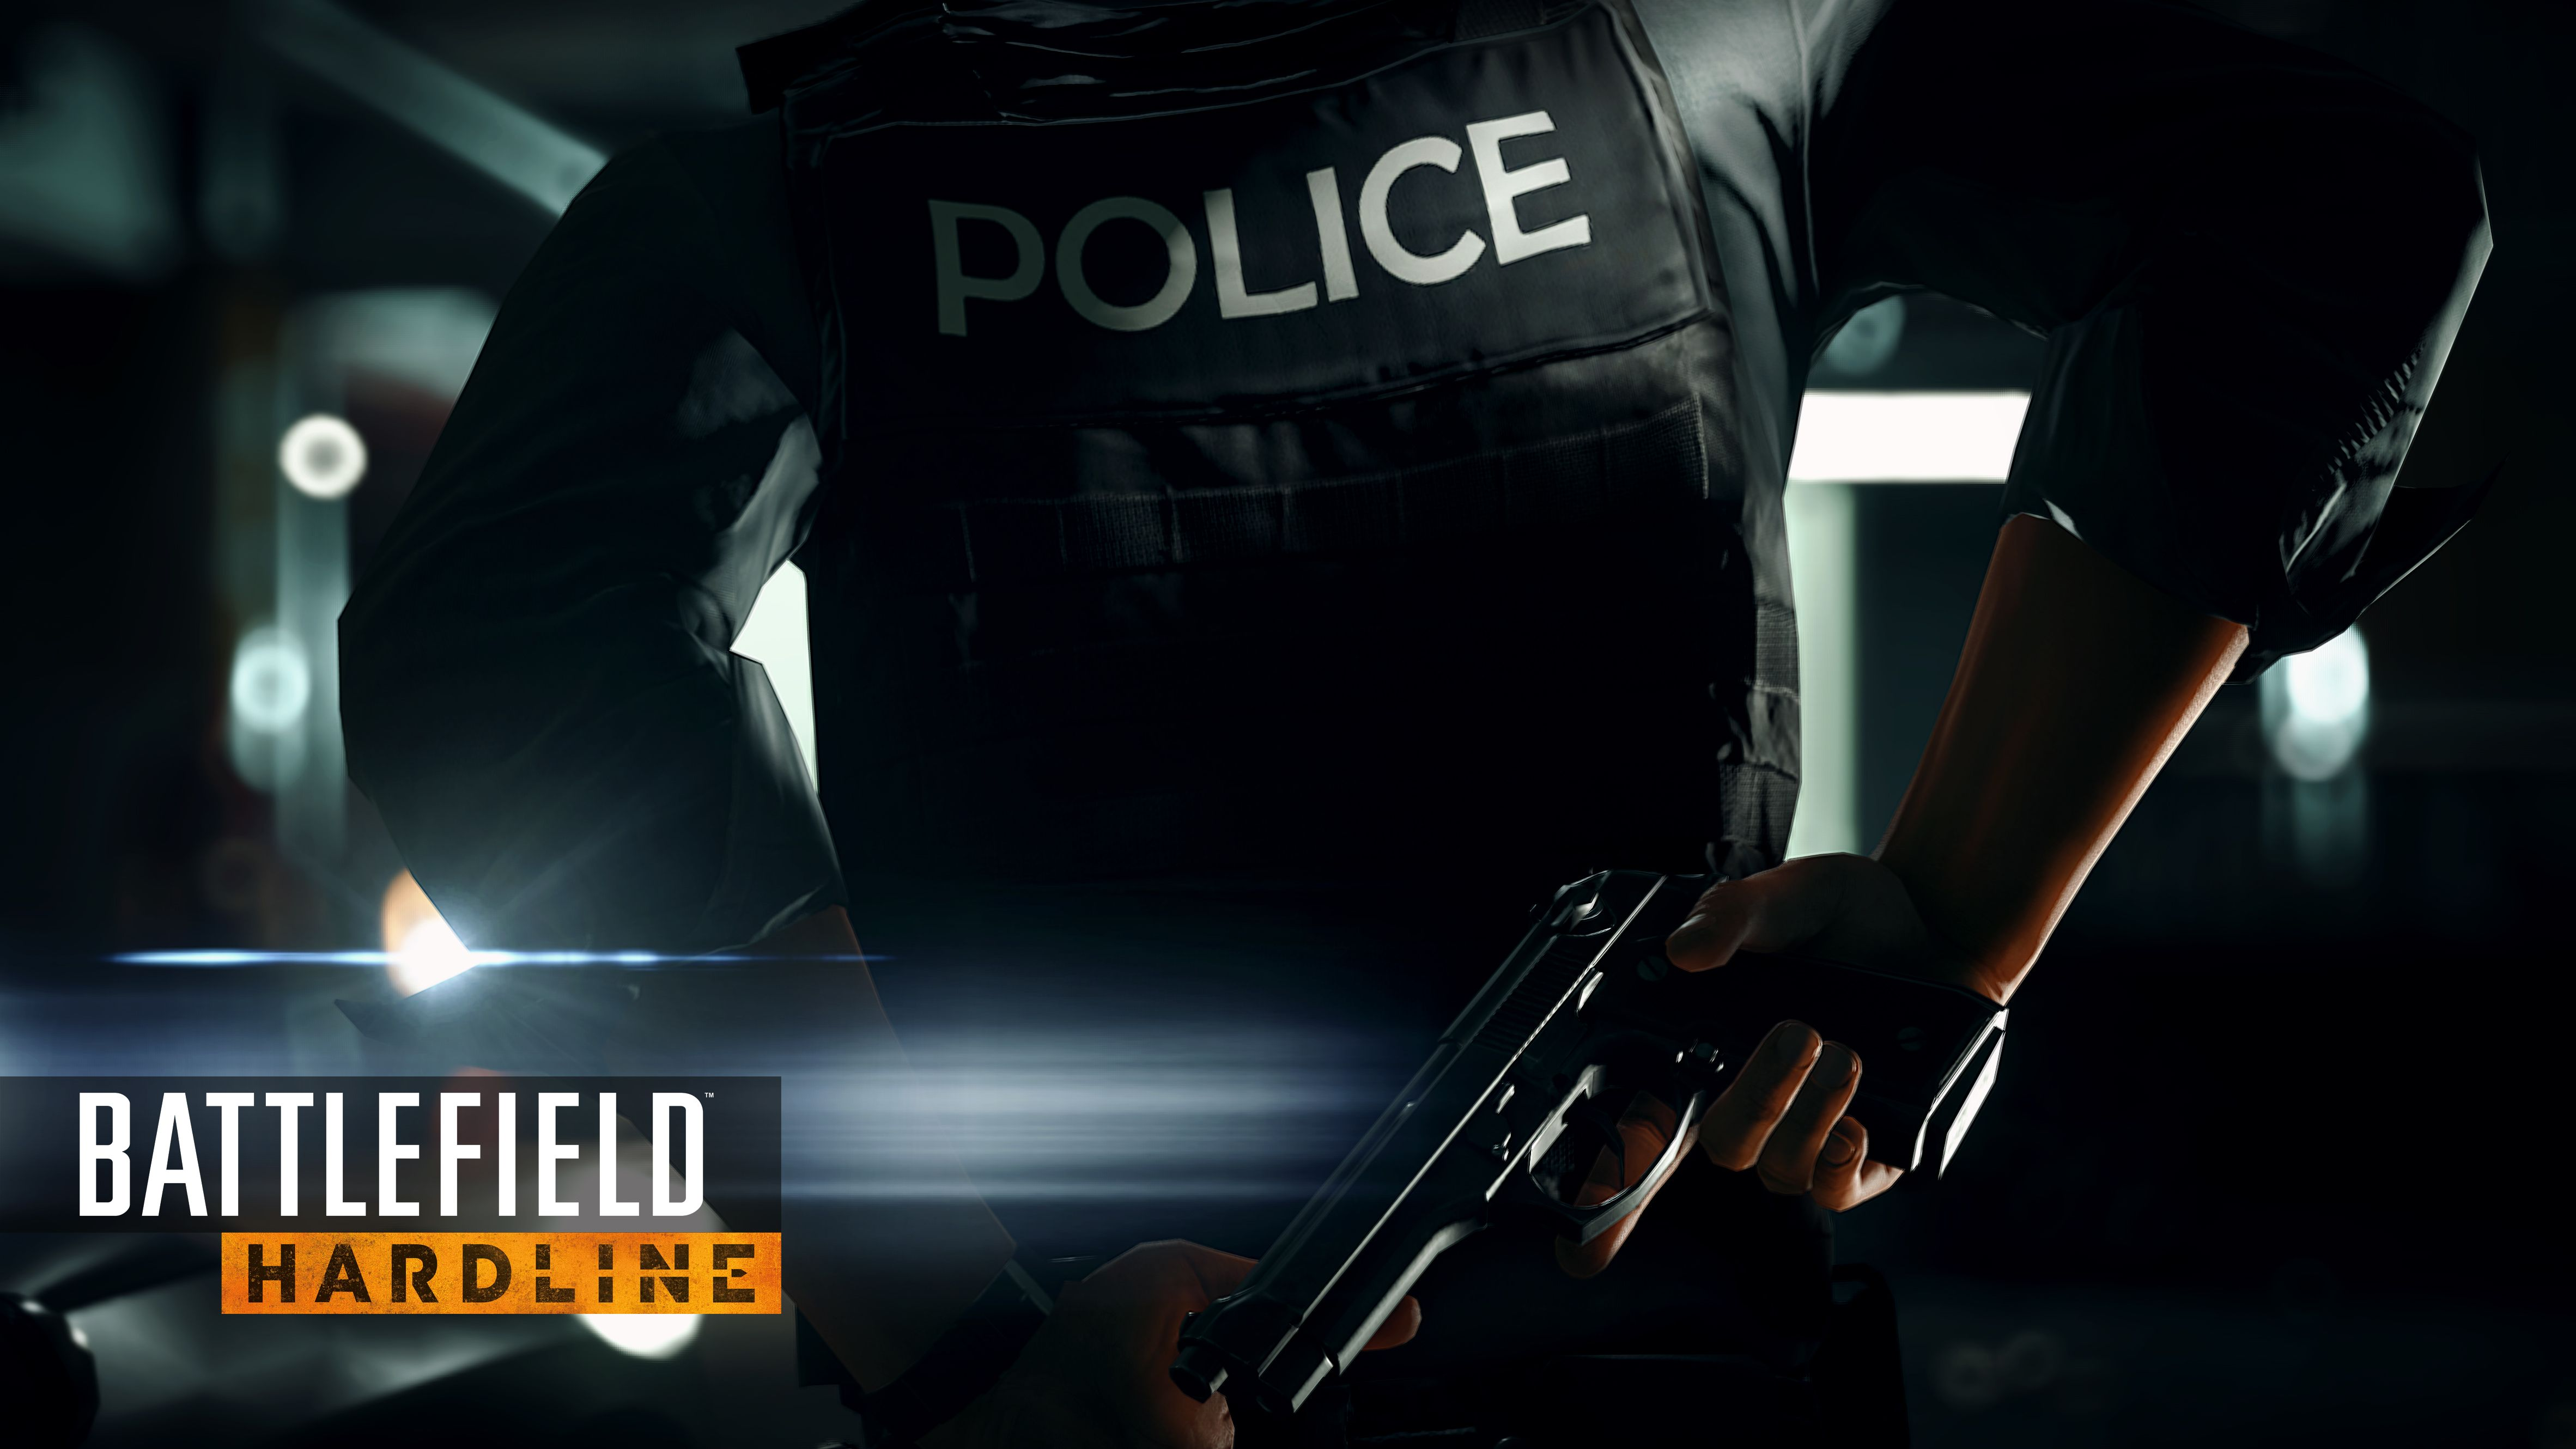 Battlefield hit with DDoS attack on Xbox One